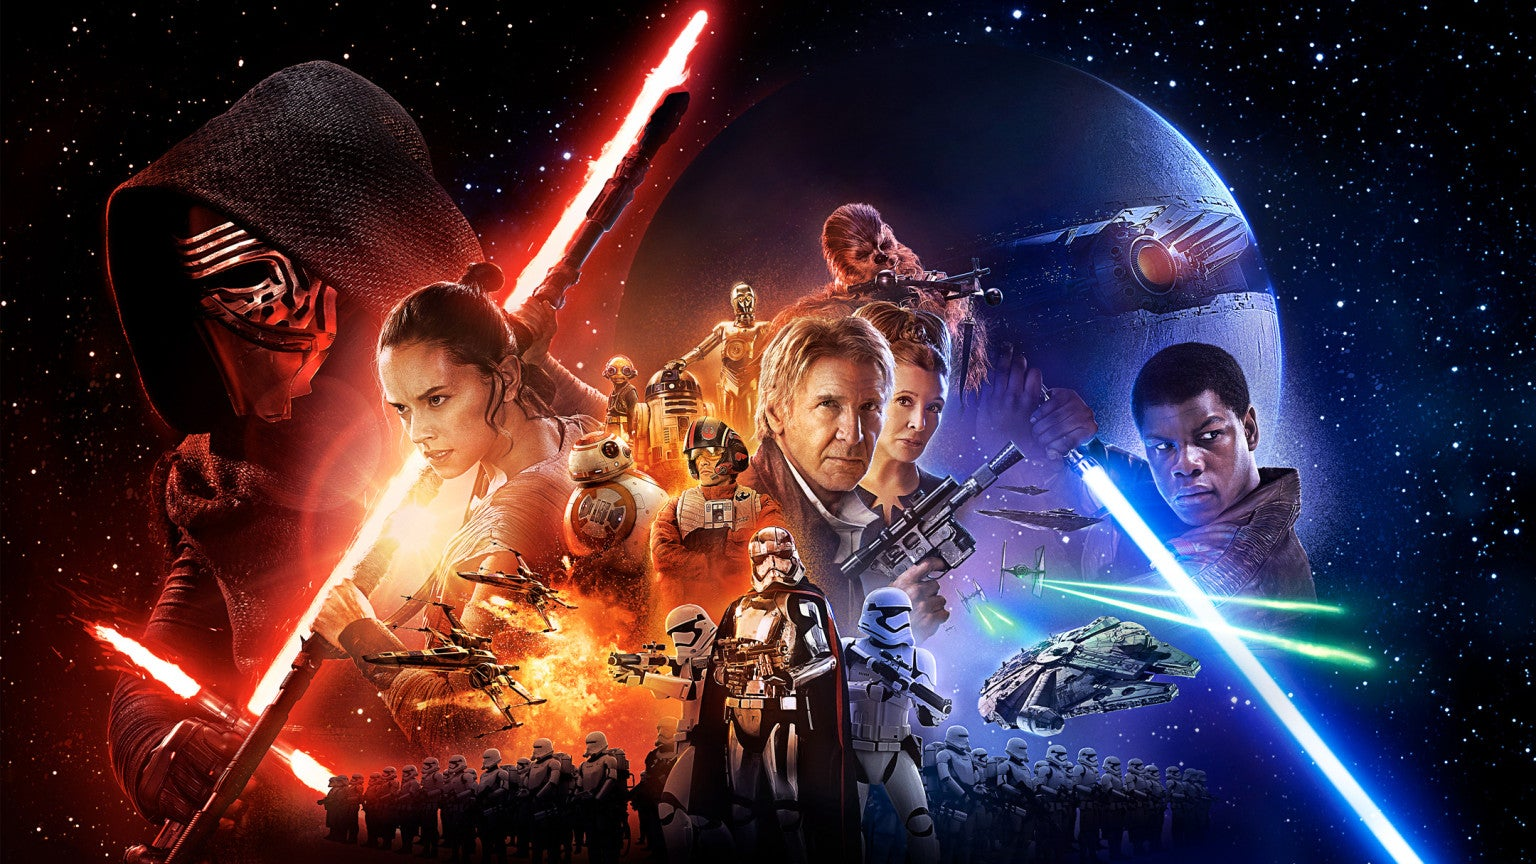 All The New Things We Learned From The Star Wars: The Force Awakens Blu-Ray